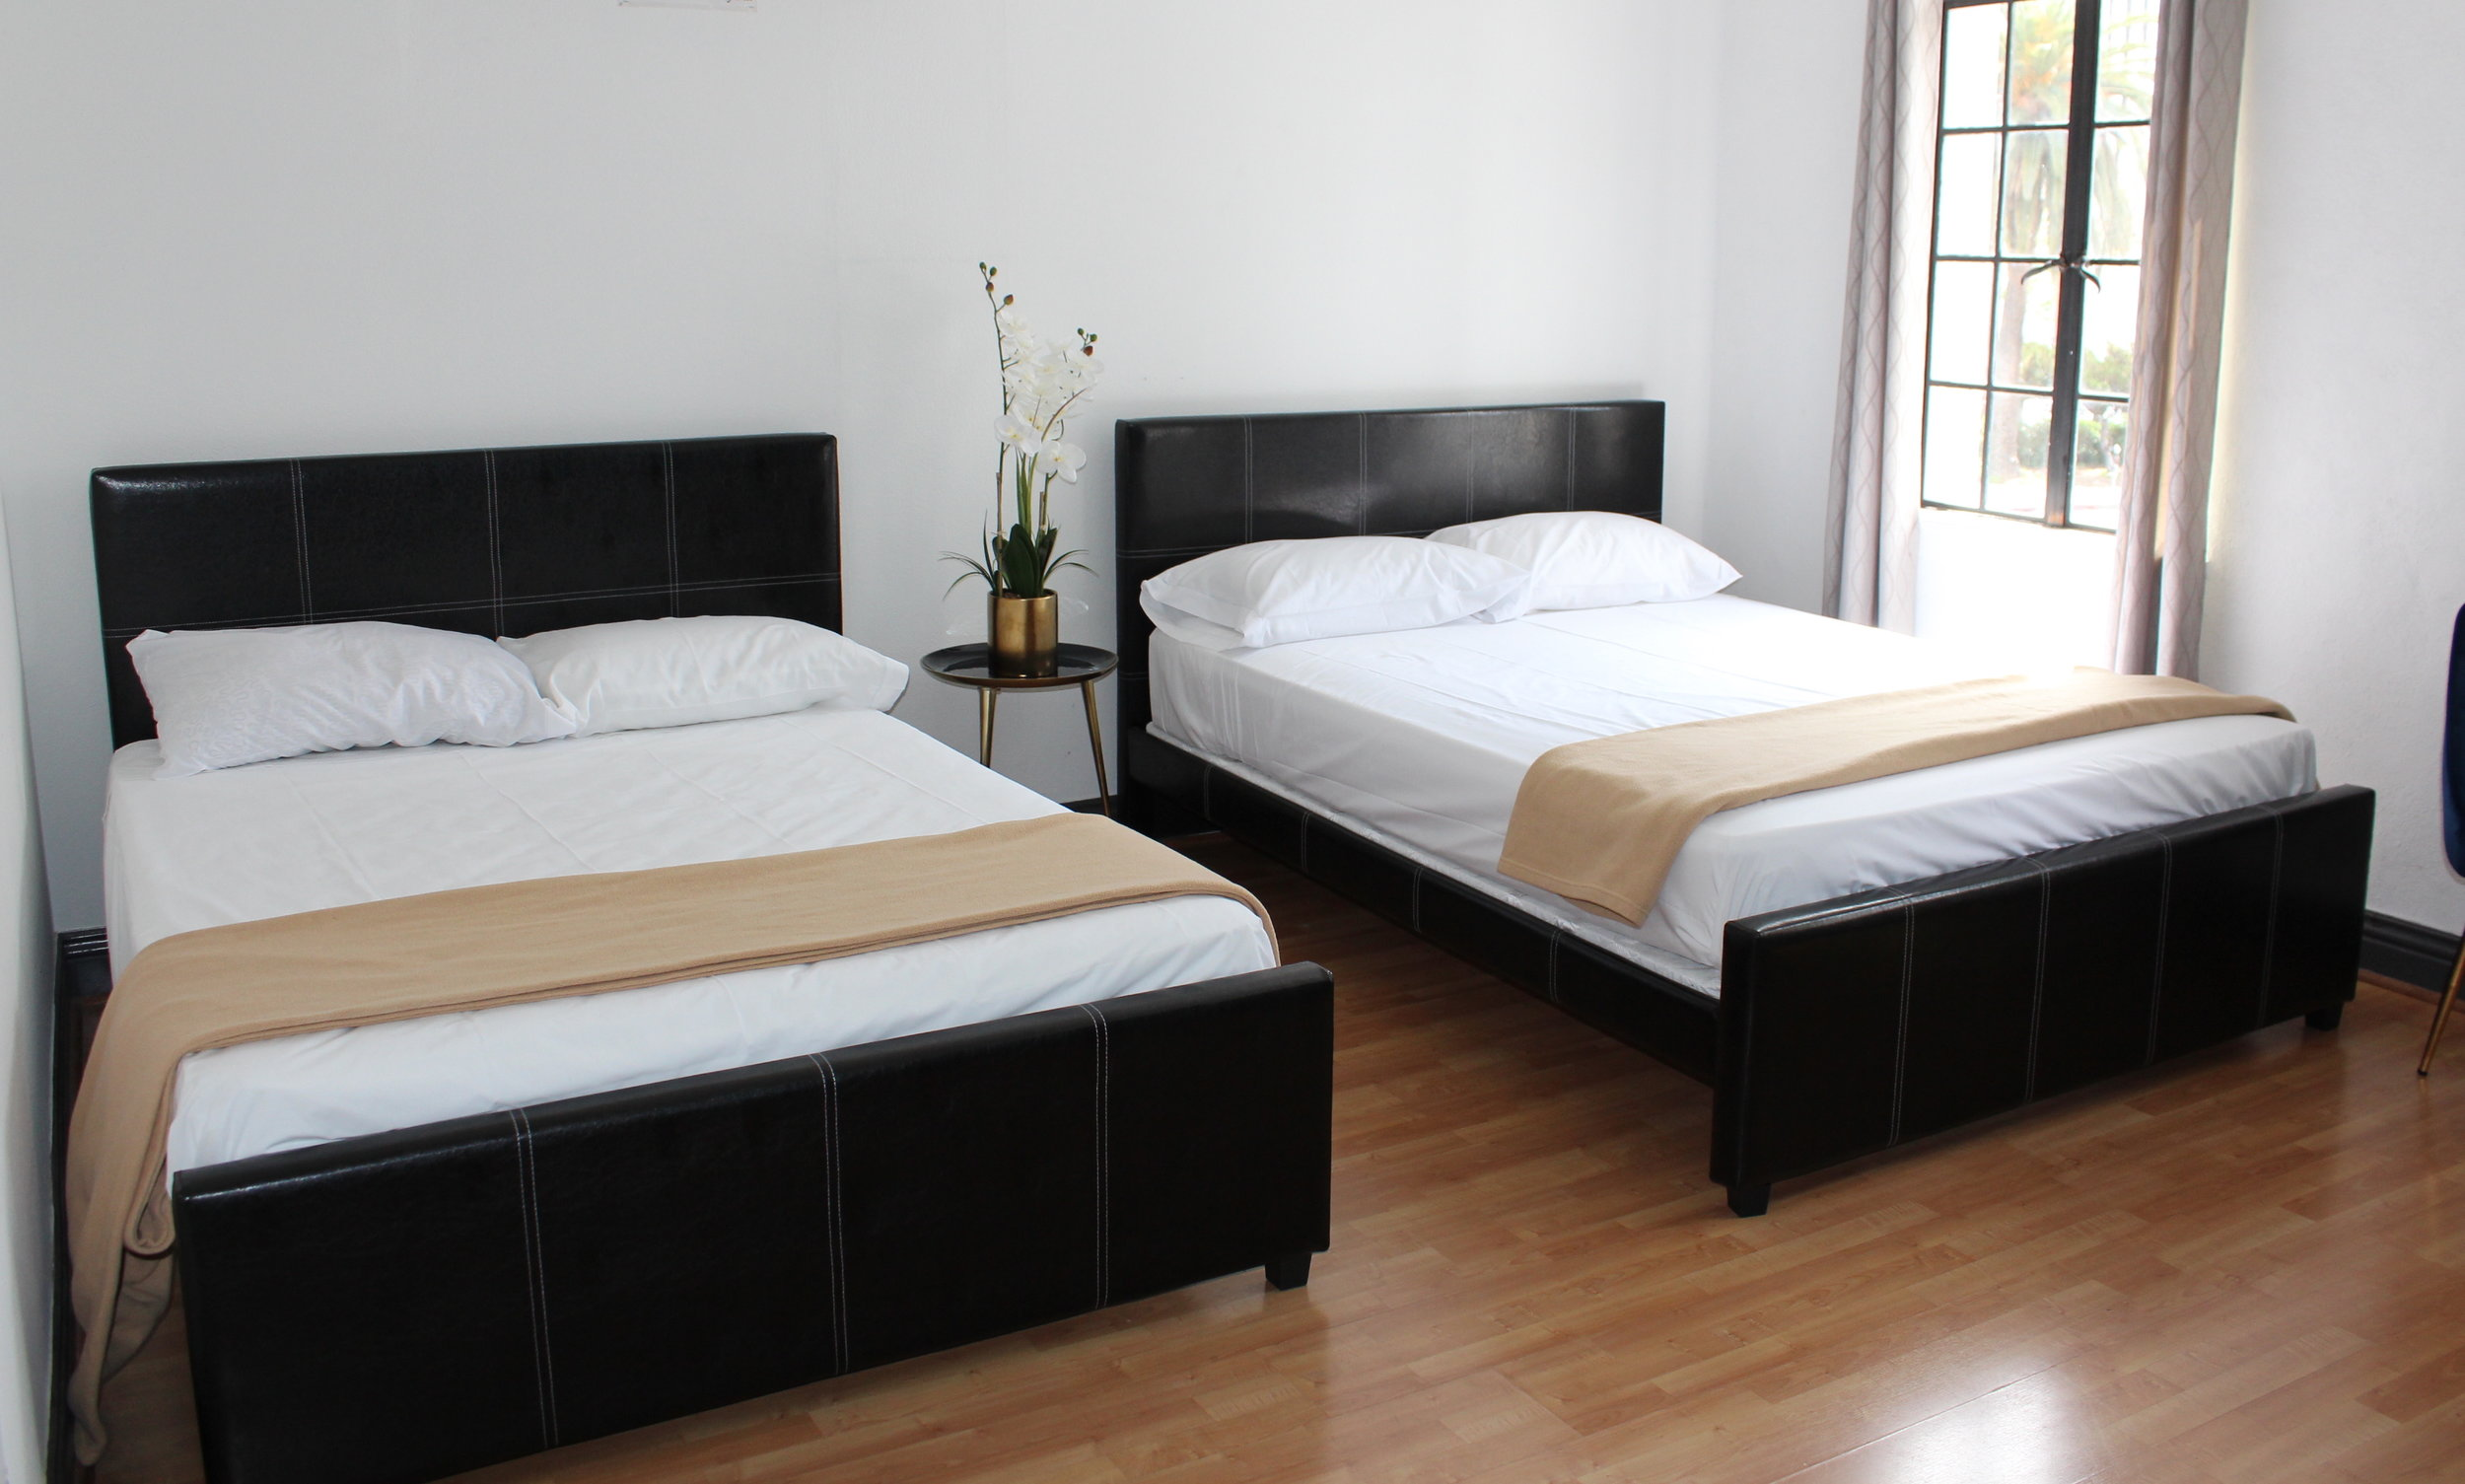 Image of 2 Full Bed Private Room.JPG